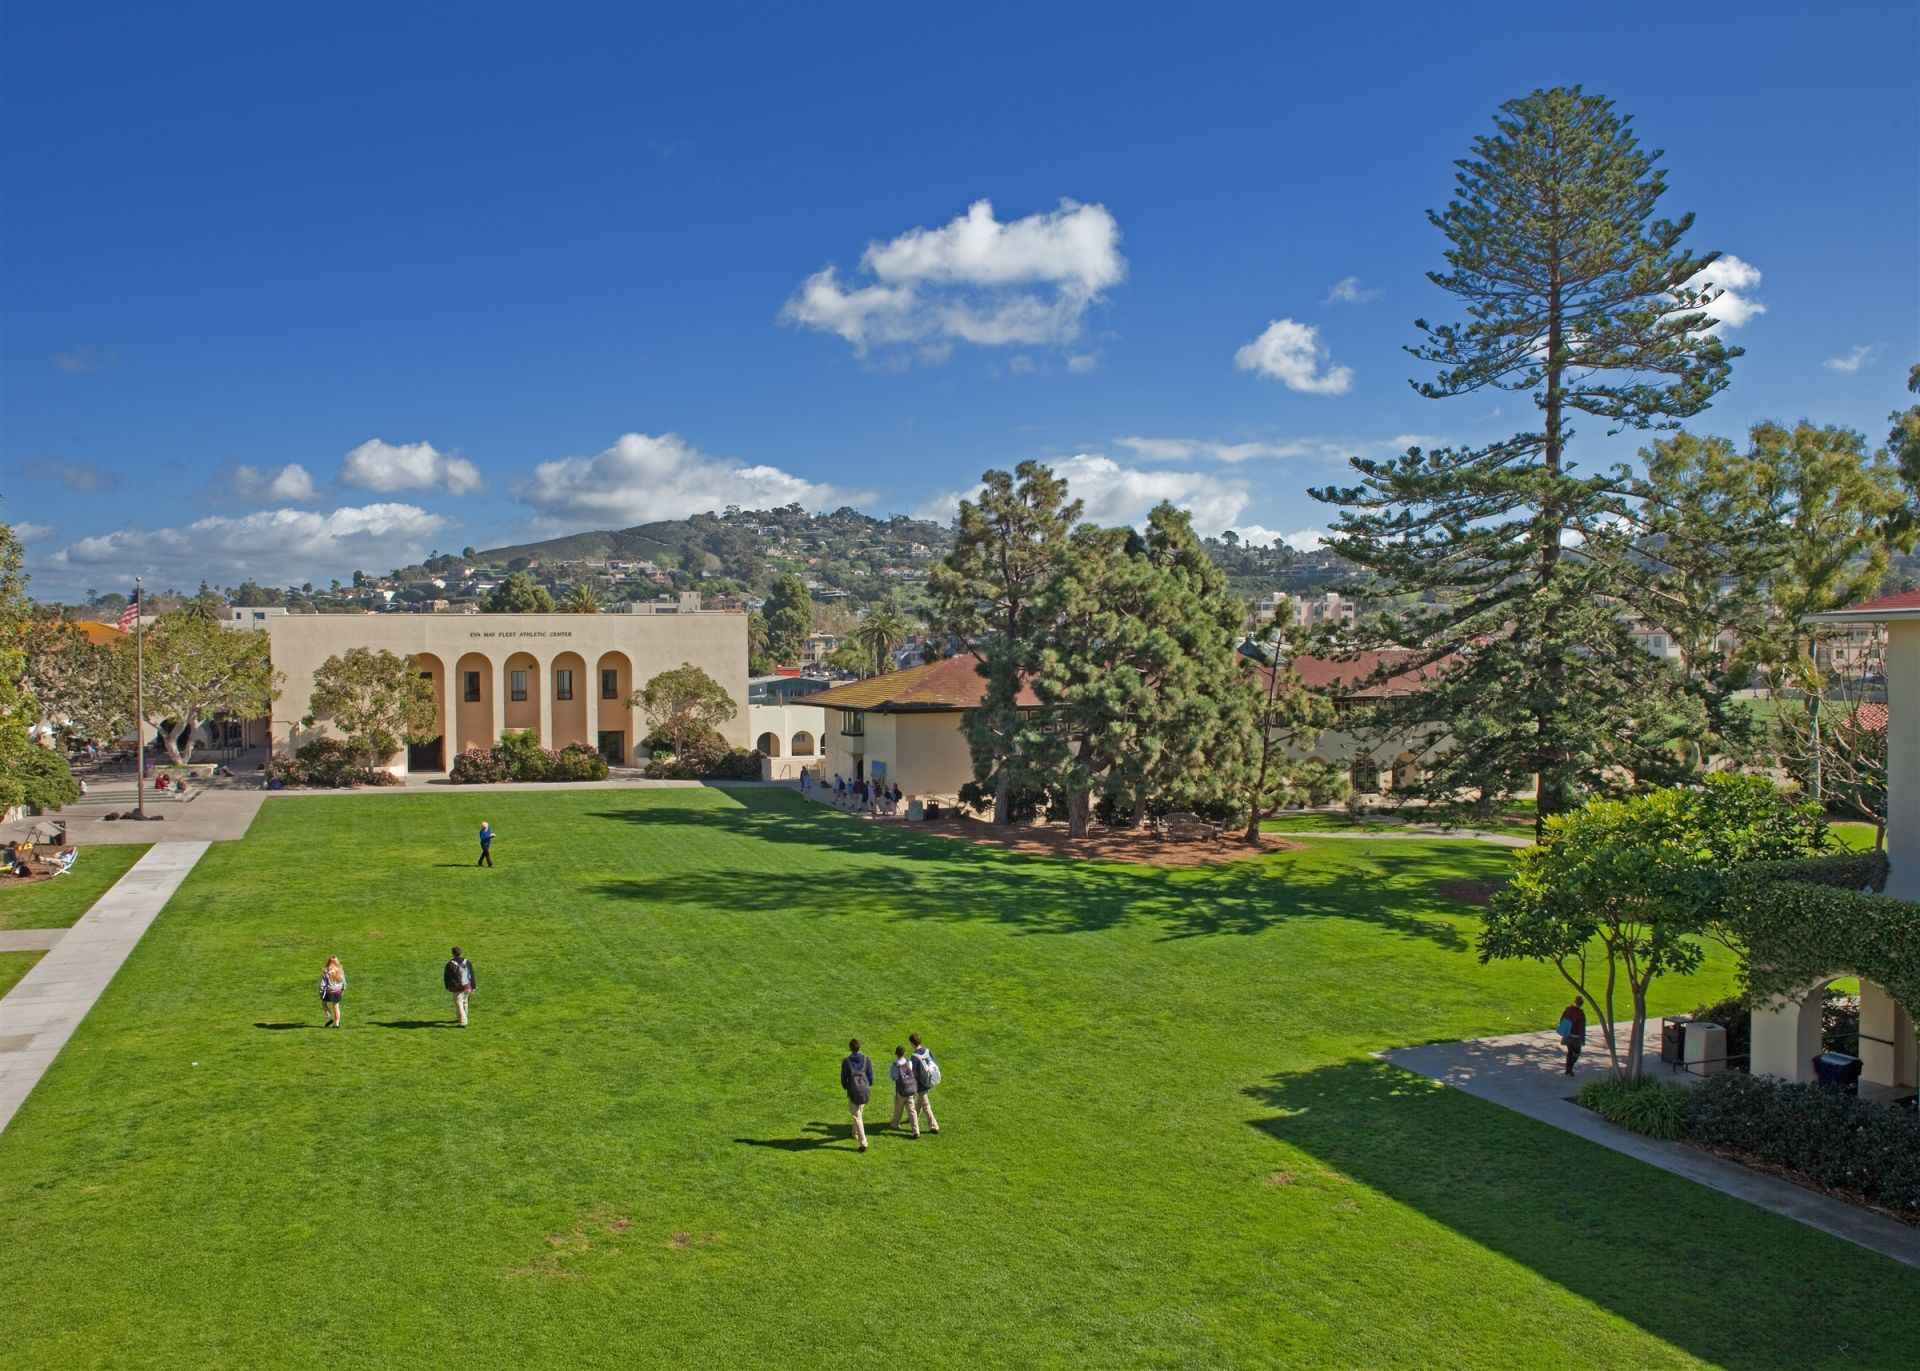 Annually, The Bishop's School is ranked as one of the top schools in the country, sending its graduates to the top schools in the United States and abroad.